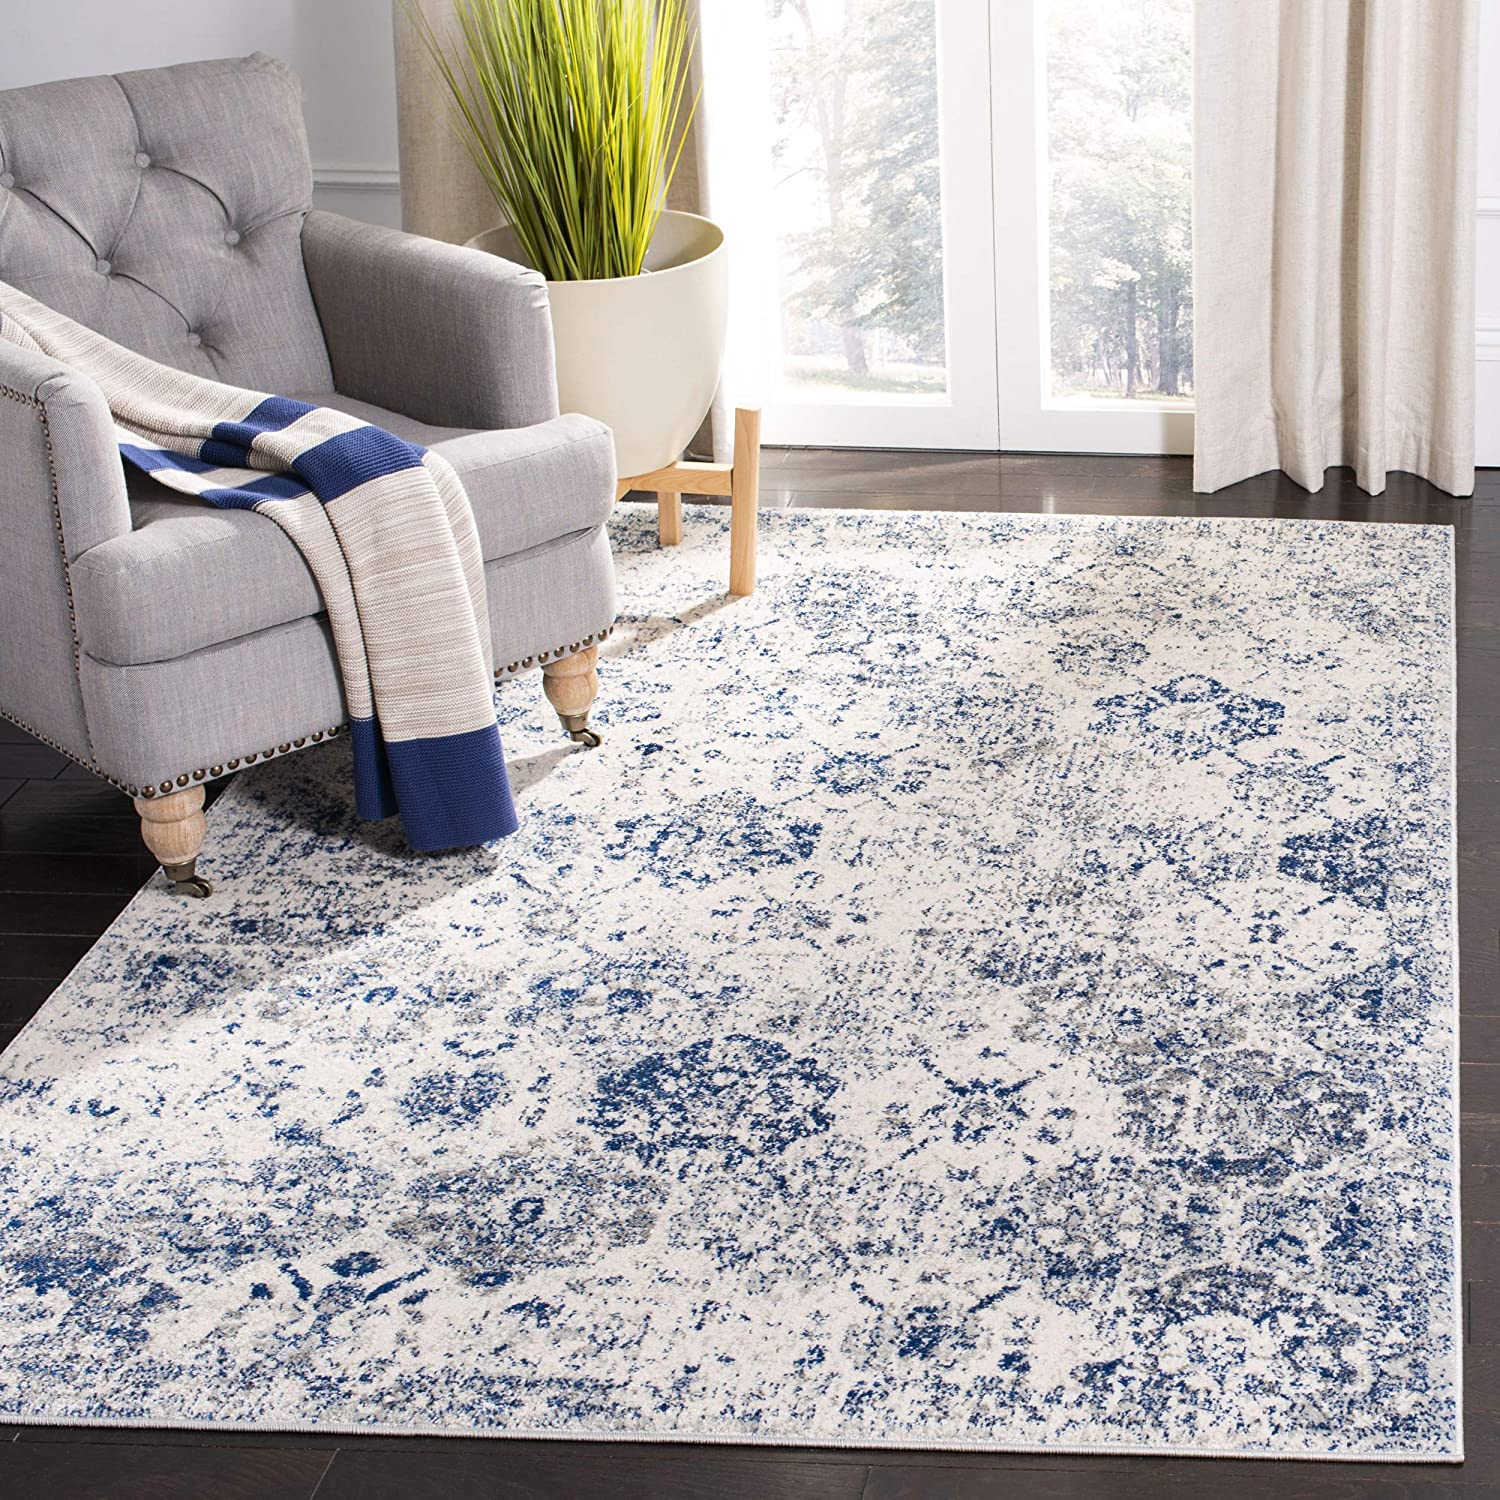 "Safavieh Madison Collection MAD611C Bohemian Chic Vintage Distressed Area Rug, 5' 1"" x 7' 6"", White/Royal Blue"